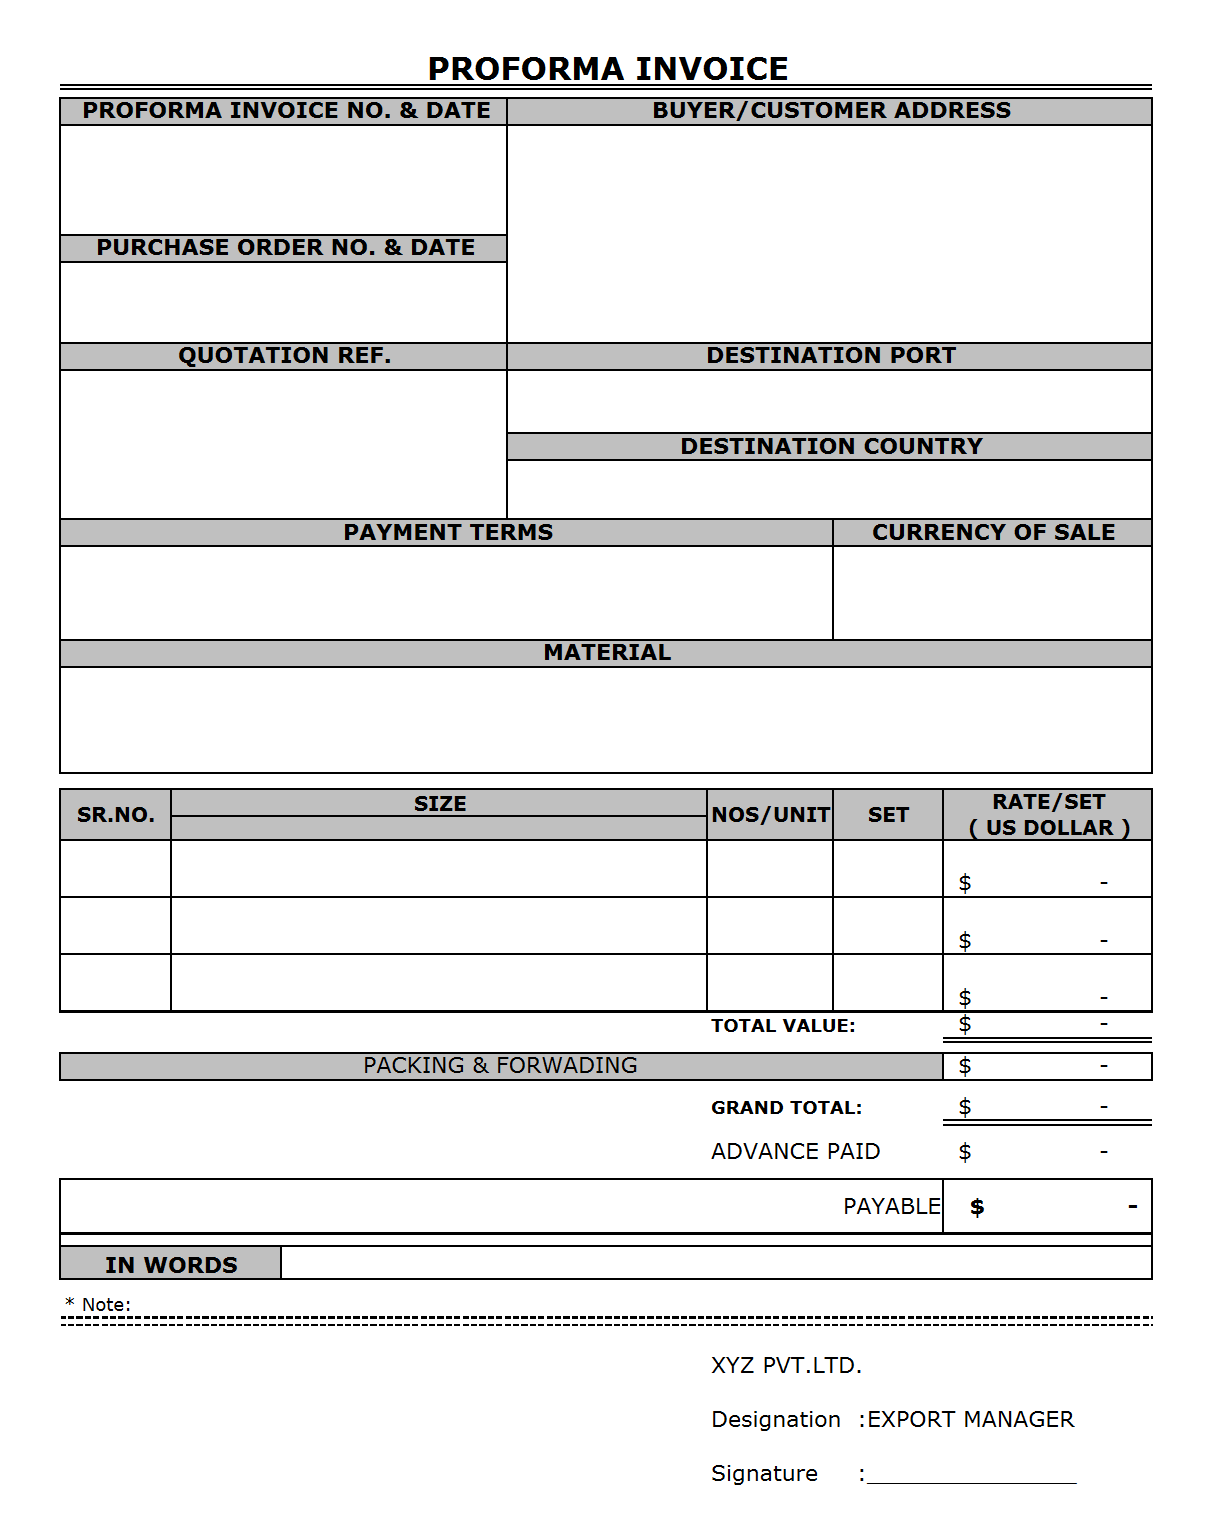 Proforma Invoice Format Format Format PG 1 ...  Proforma Invoice Format In Word